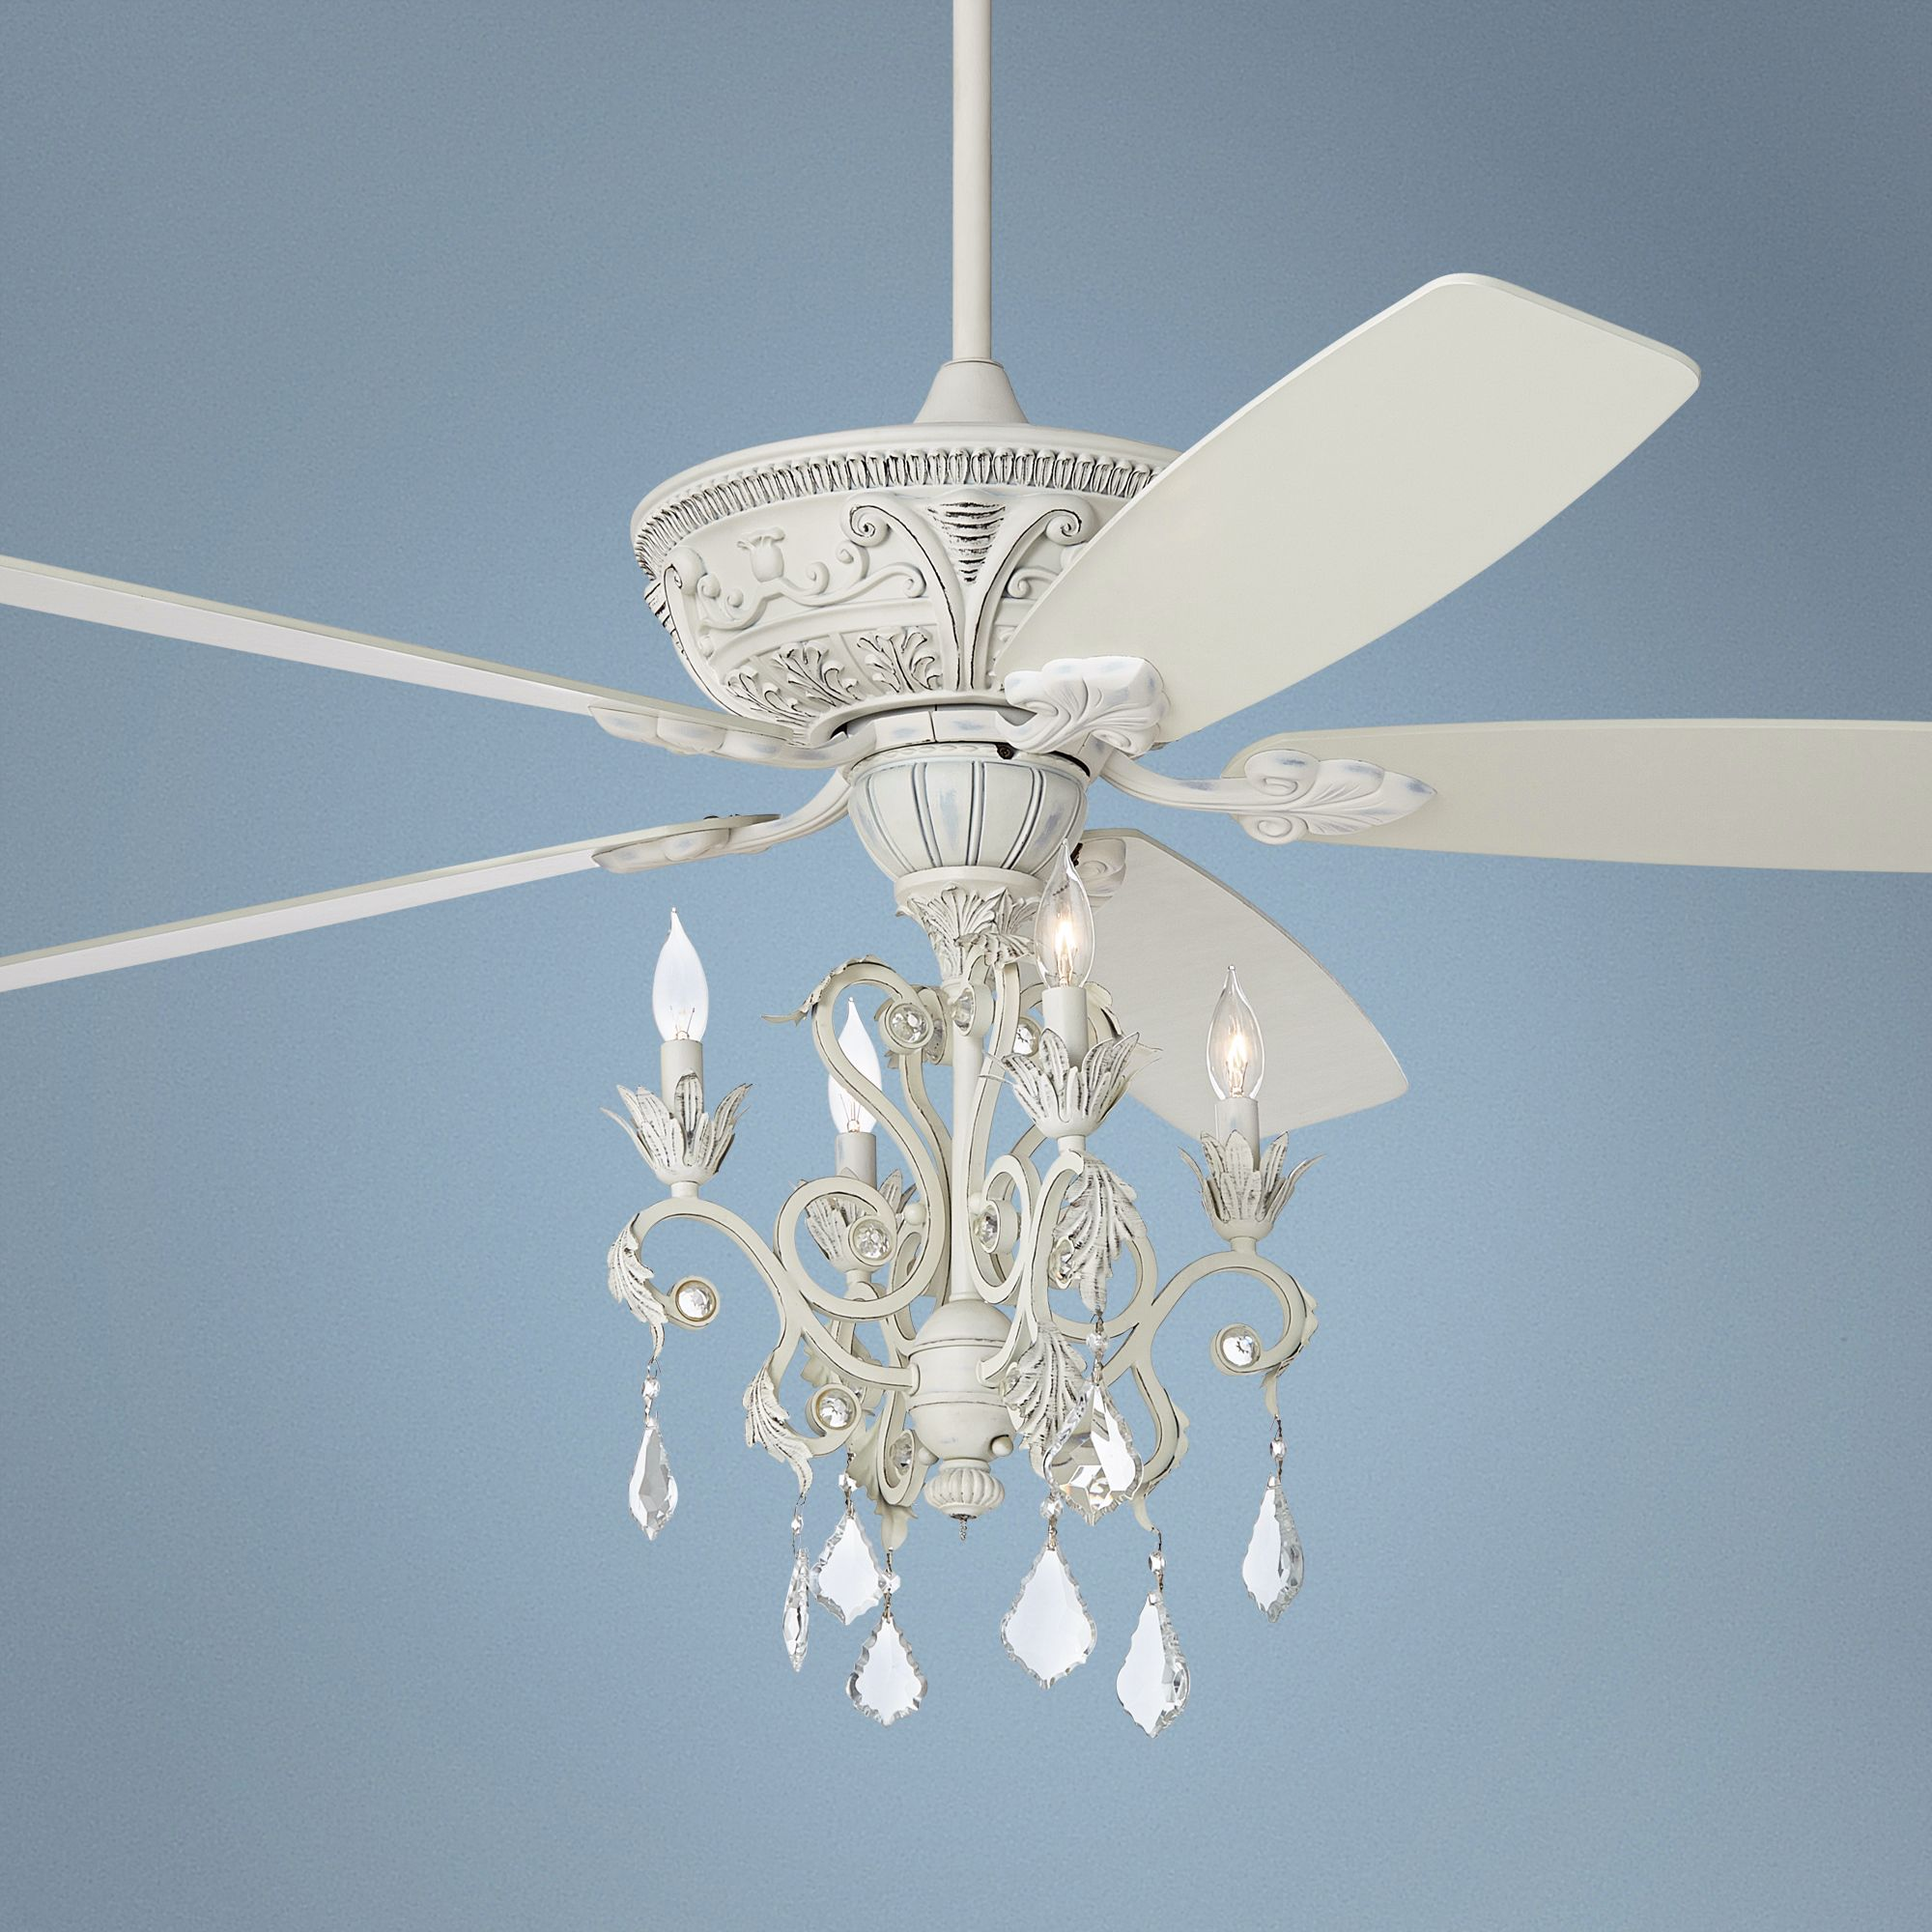 Crystal ceiling fan light - 10 rich ways to cool your room ...